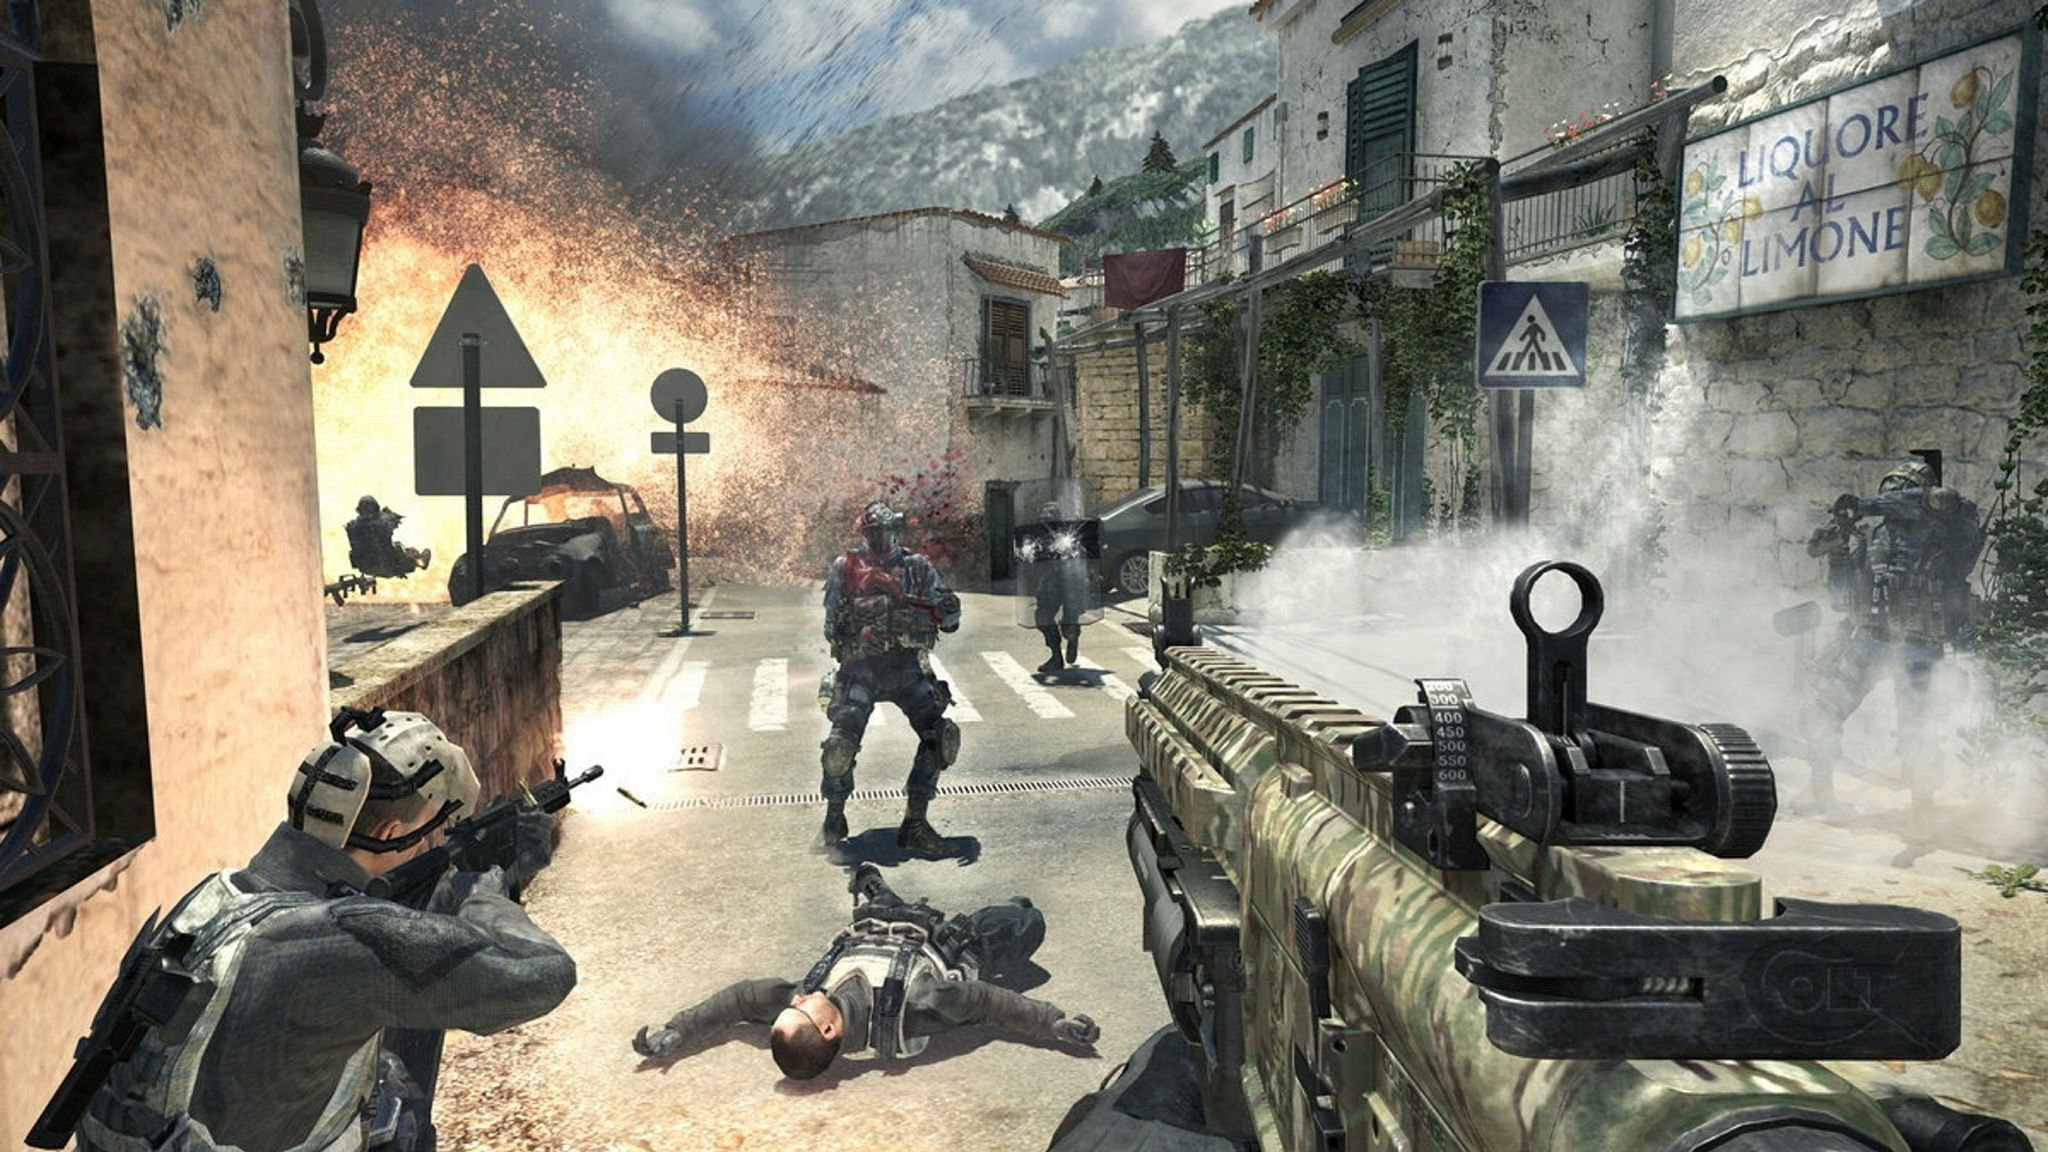 Do video games encourage violent acts? | Financial Times